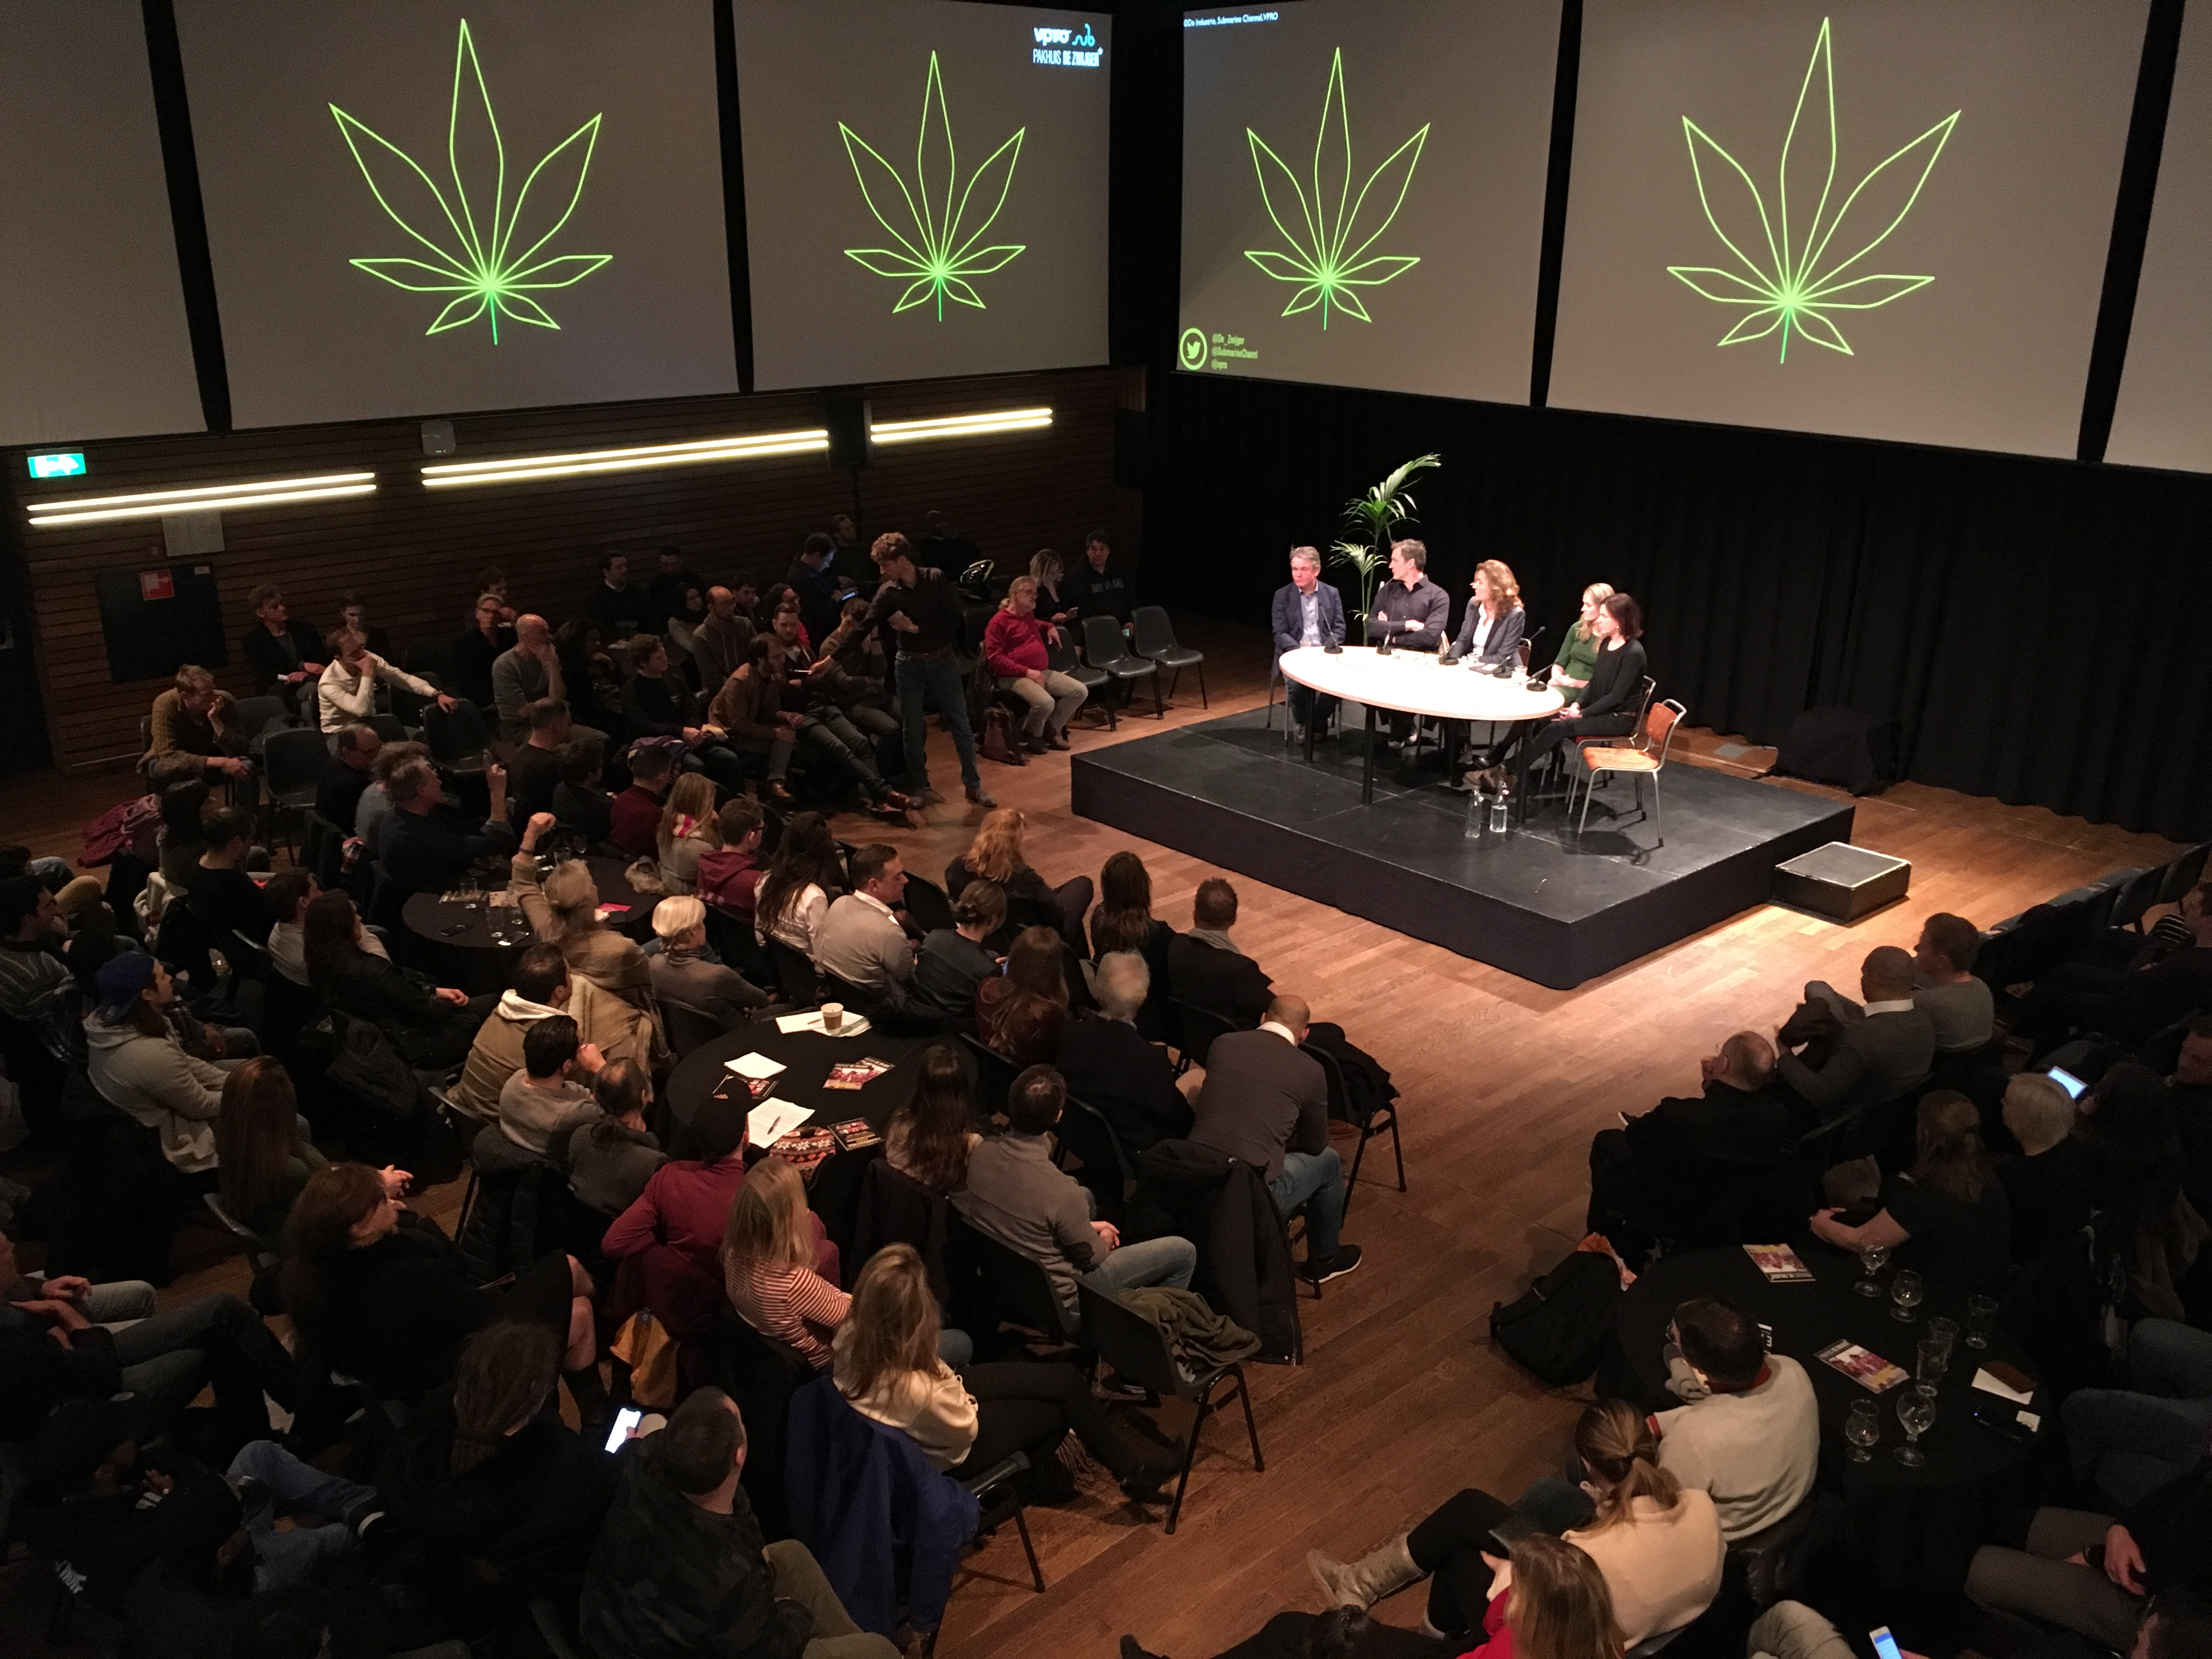 The Dutch Weed experiment